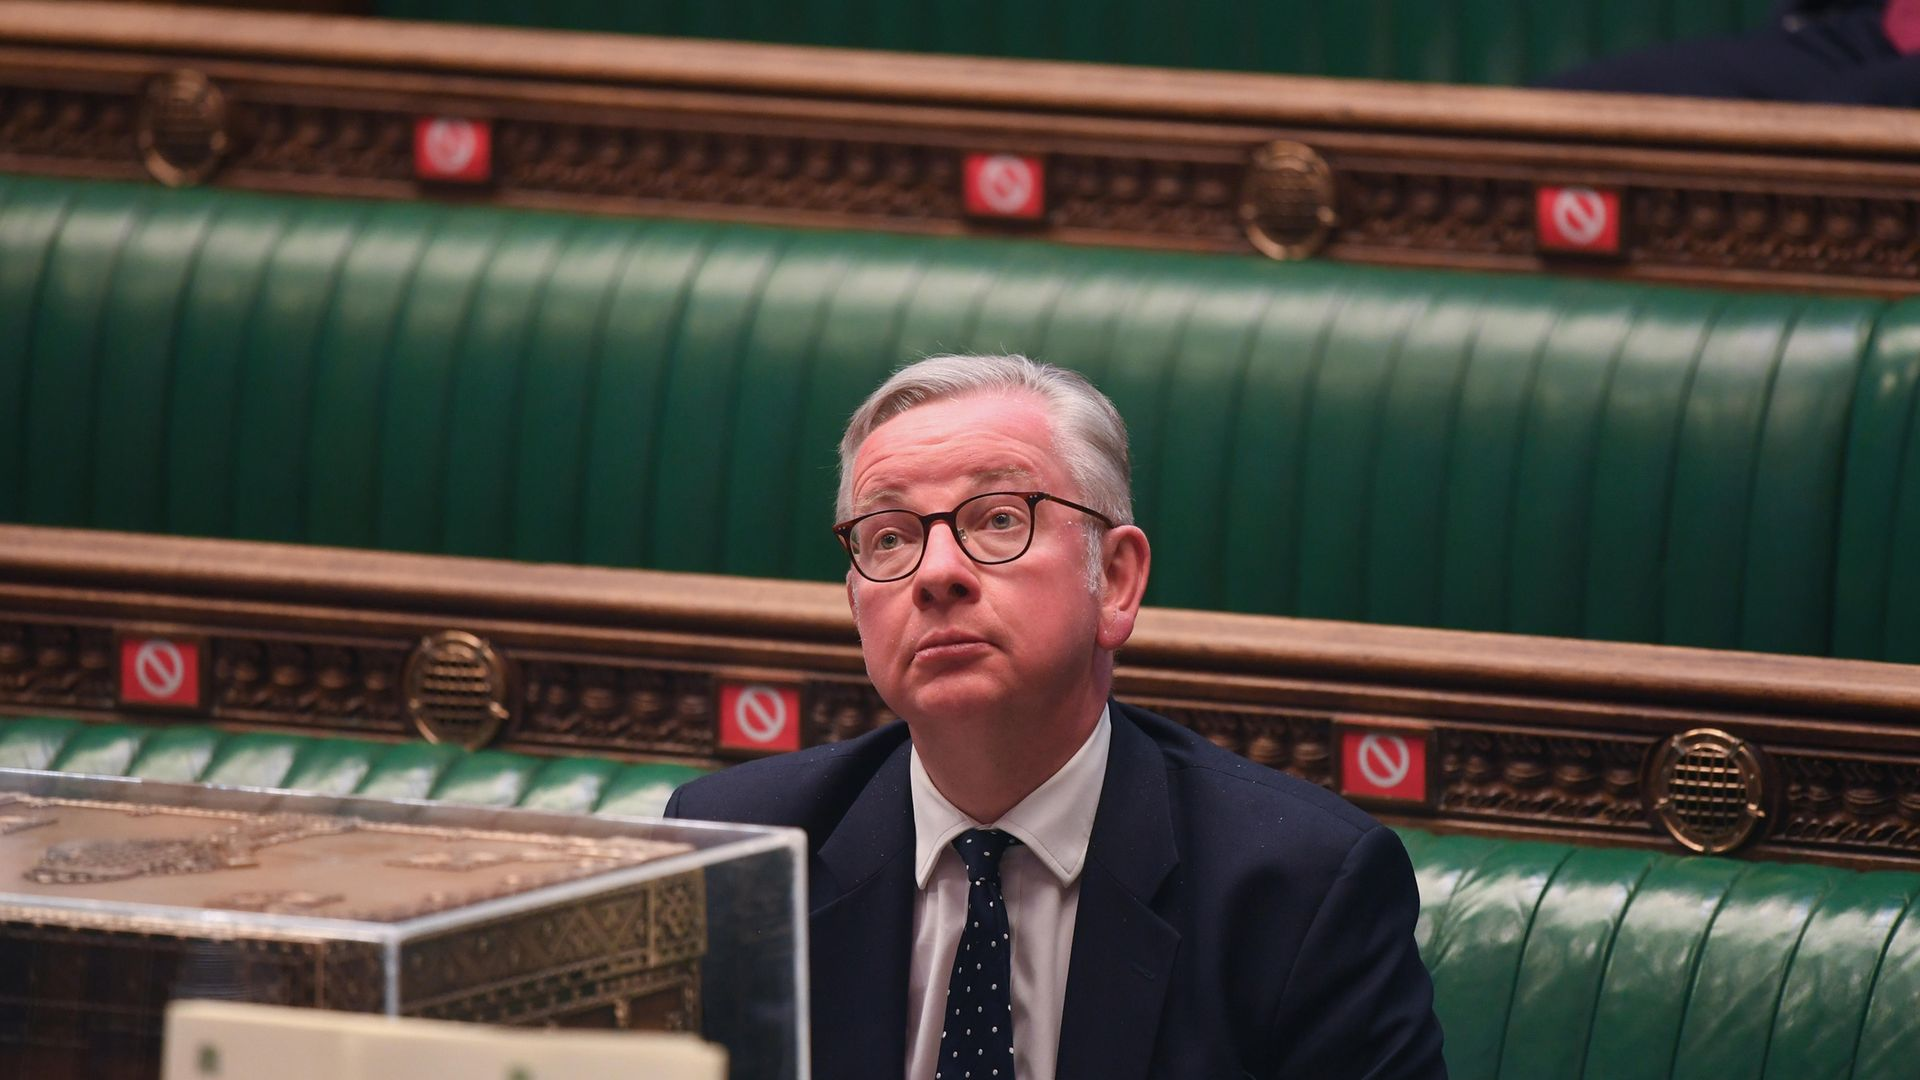 Cabinet Office Minister Michael Gove in the House of Commons - Credit: PA